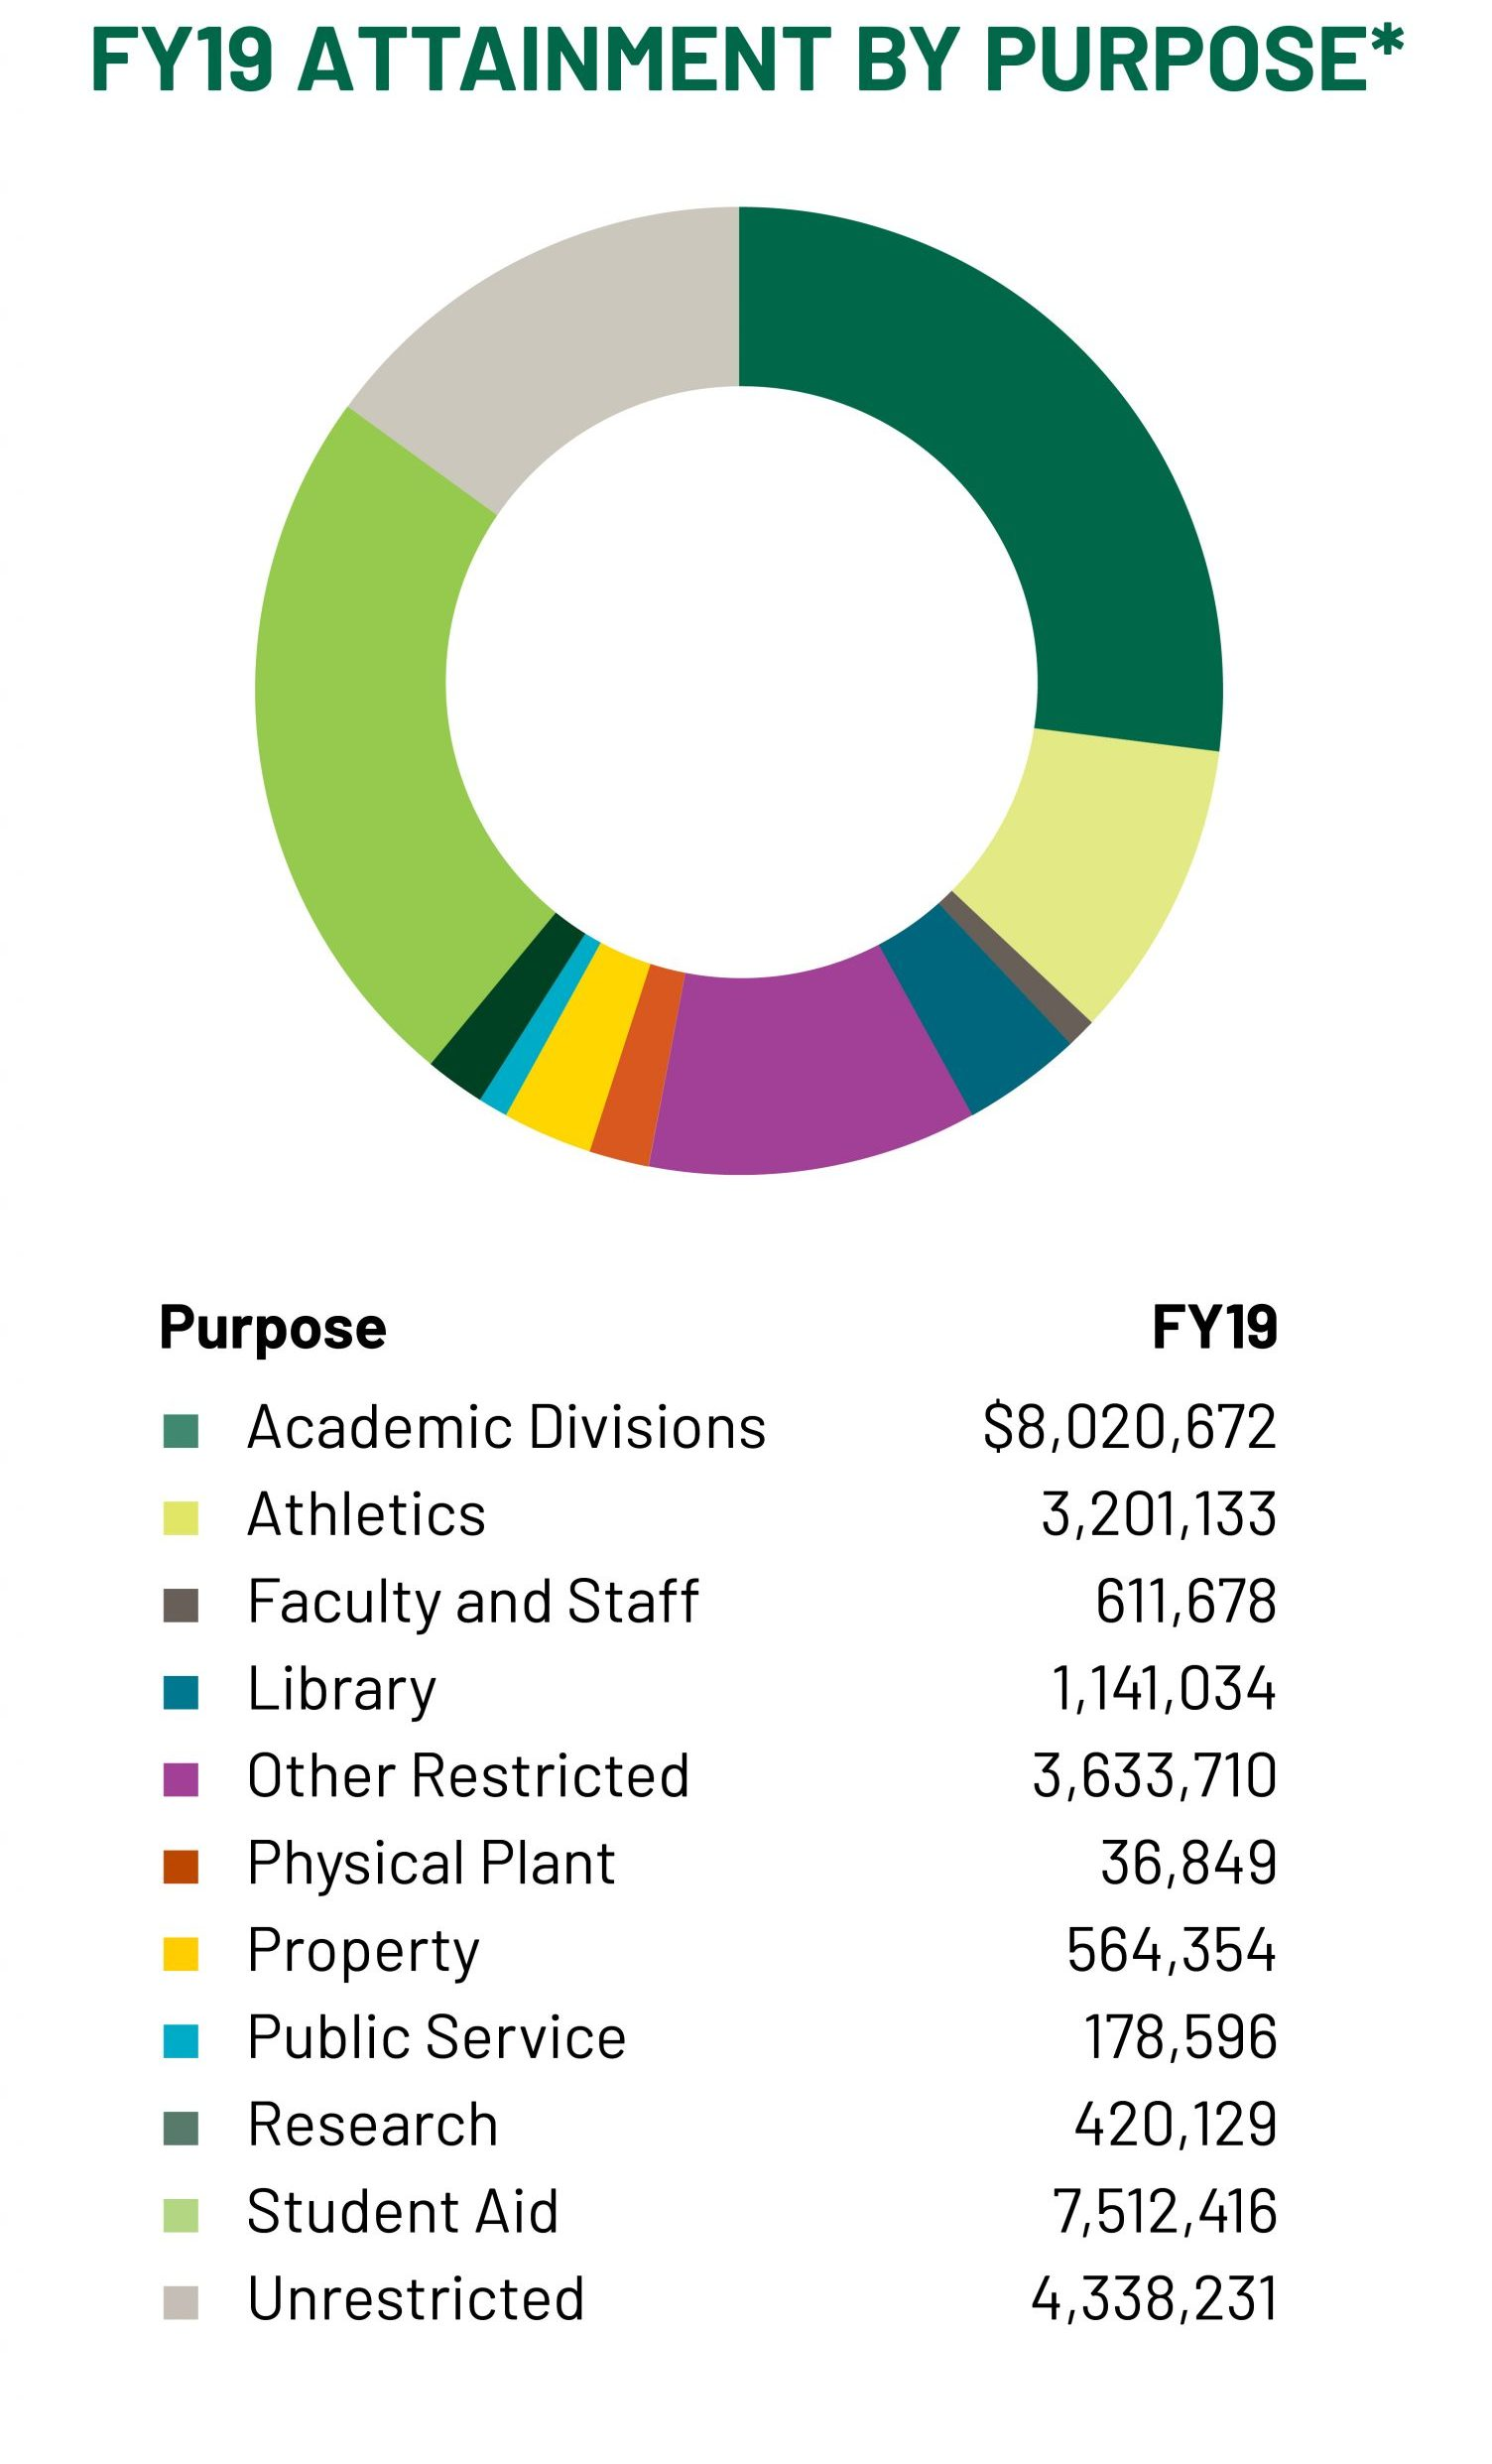 FY19 by purpose